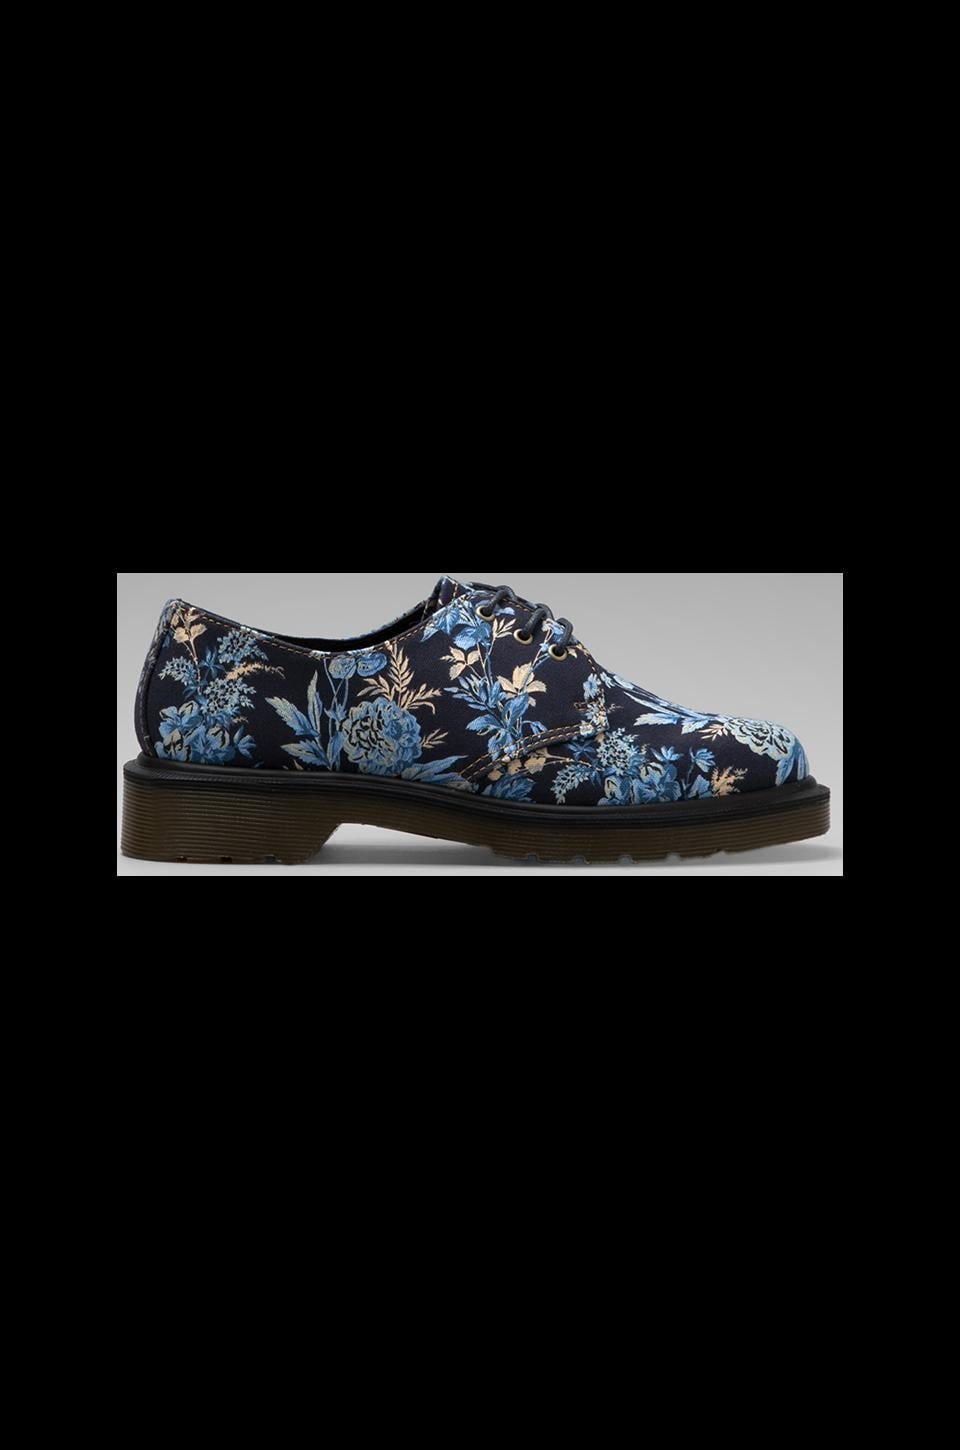 Dr. Martens Lester 3-Eye Shoe in Blue Floral